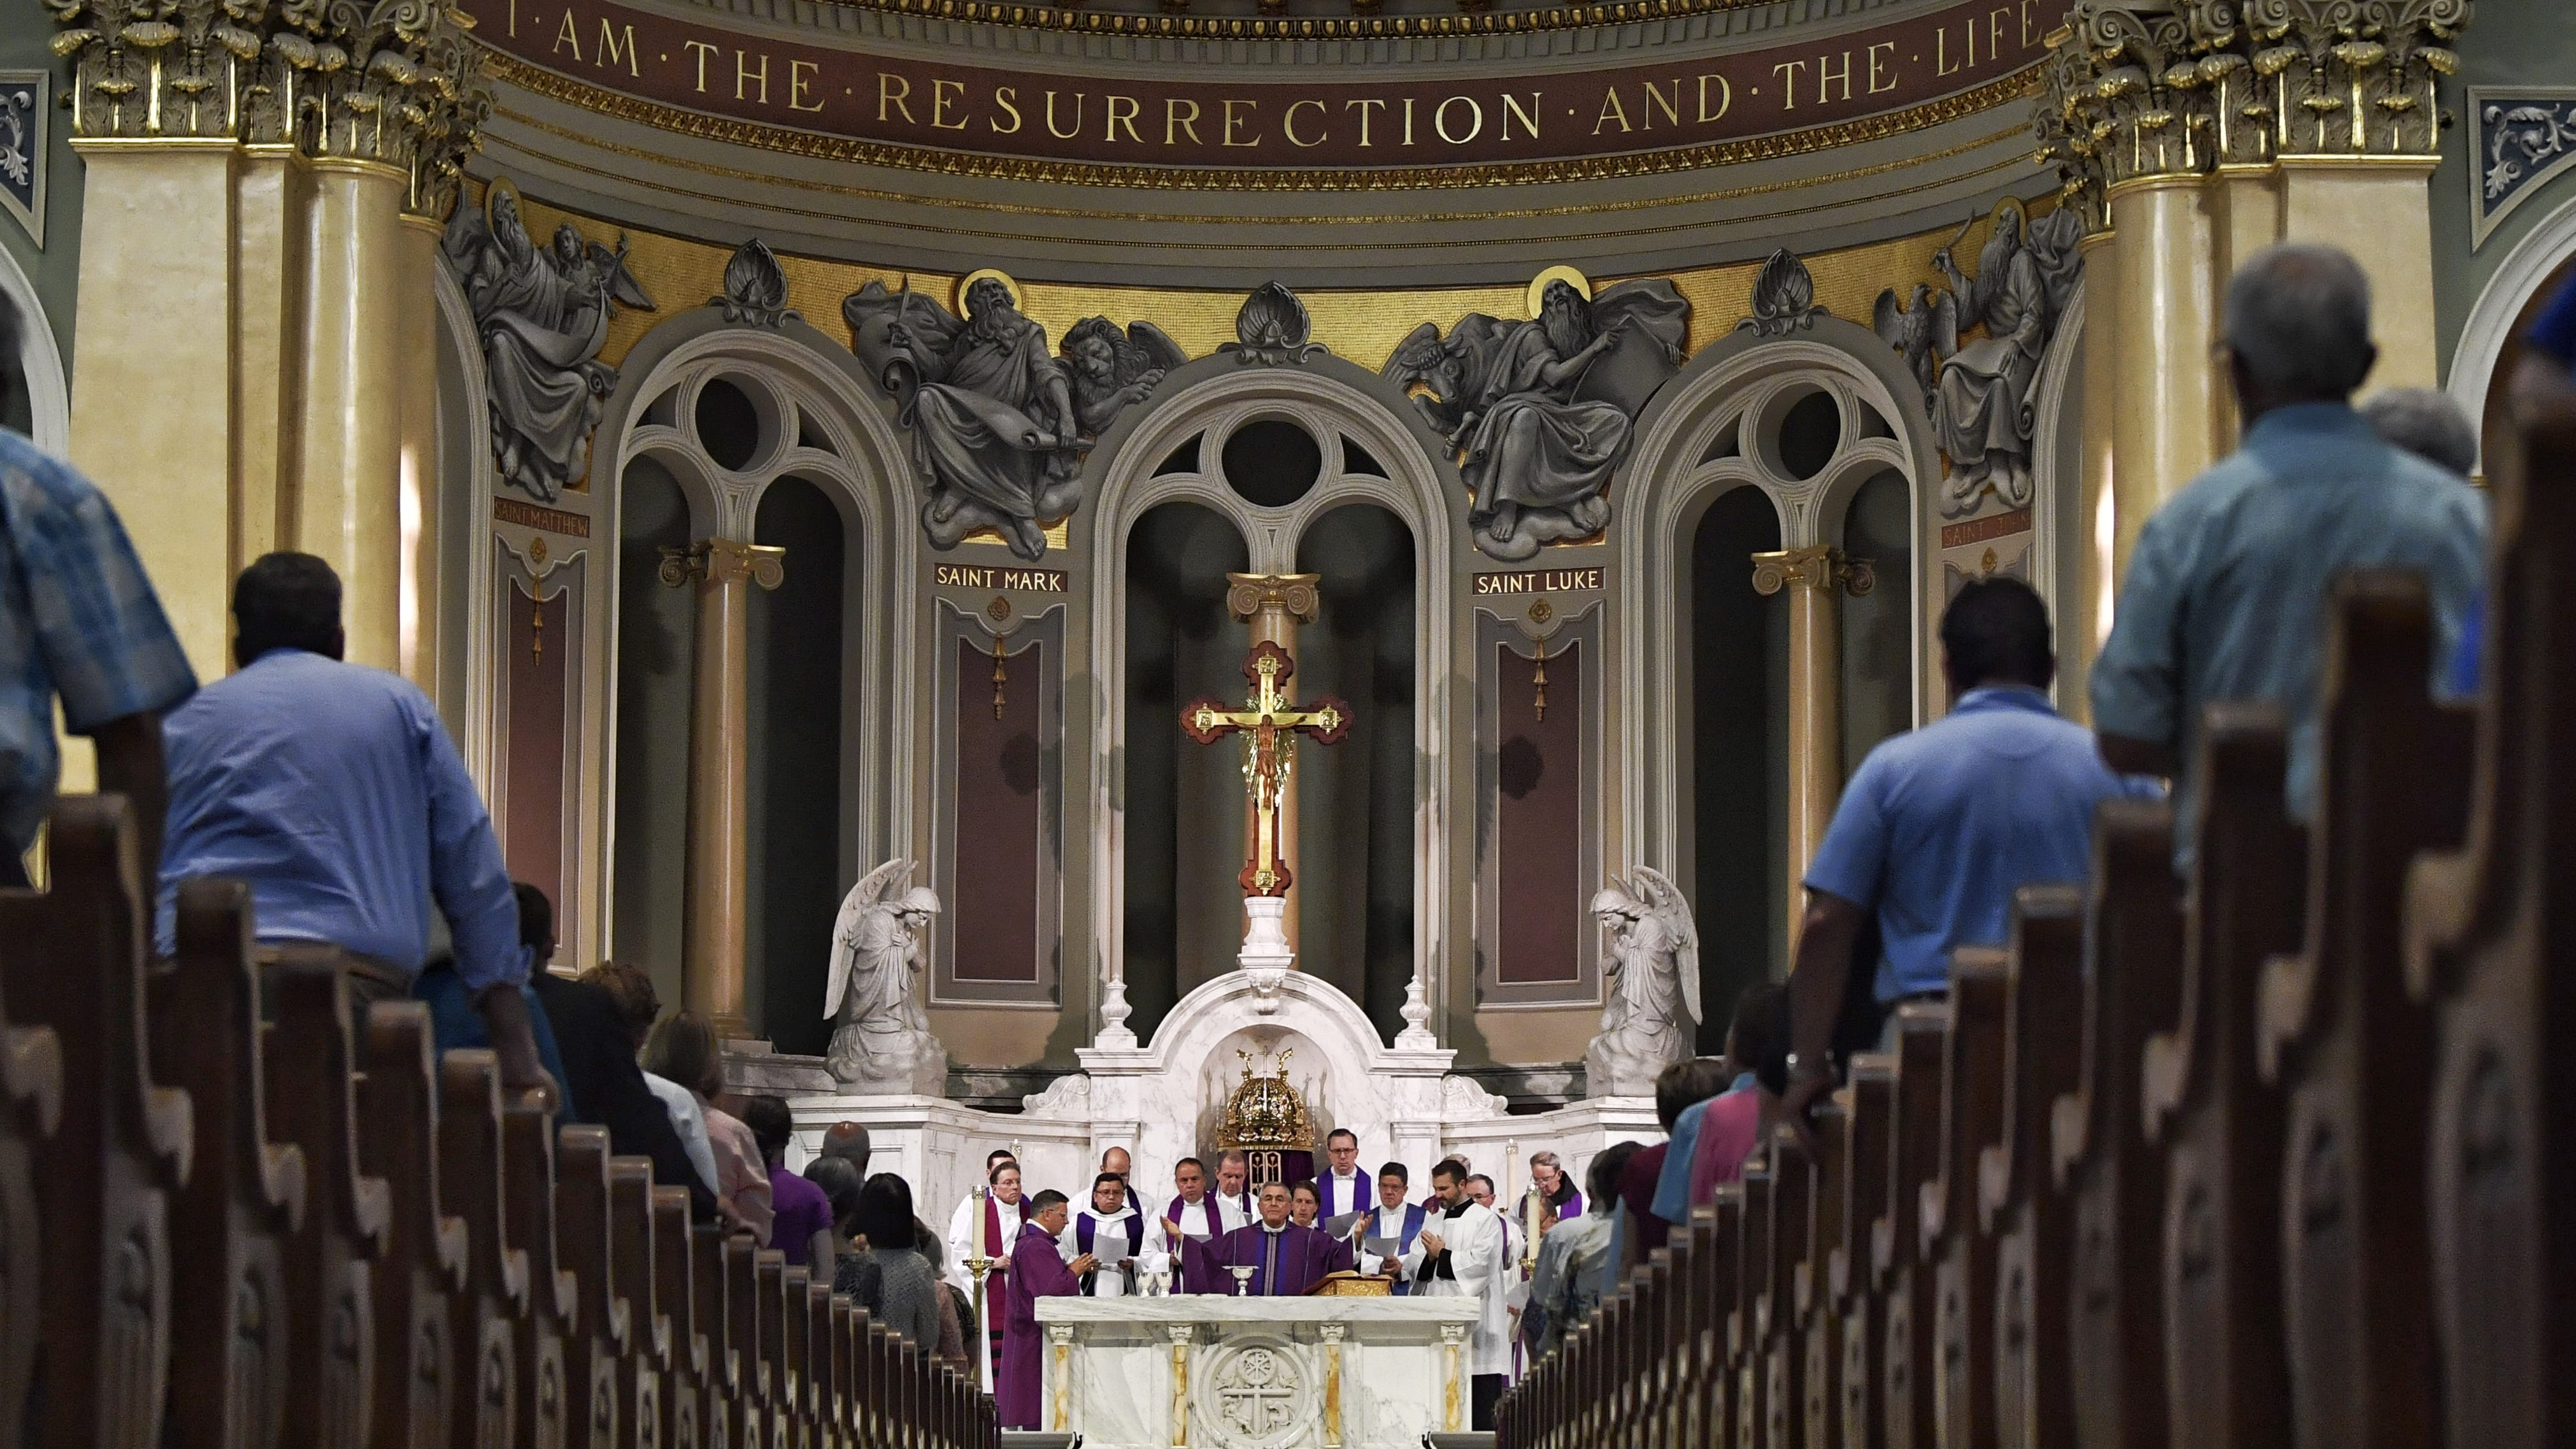 Roncalli, Pennsylvania cases stir strong reactions from local Catholics